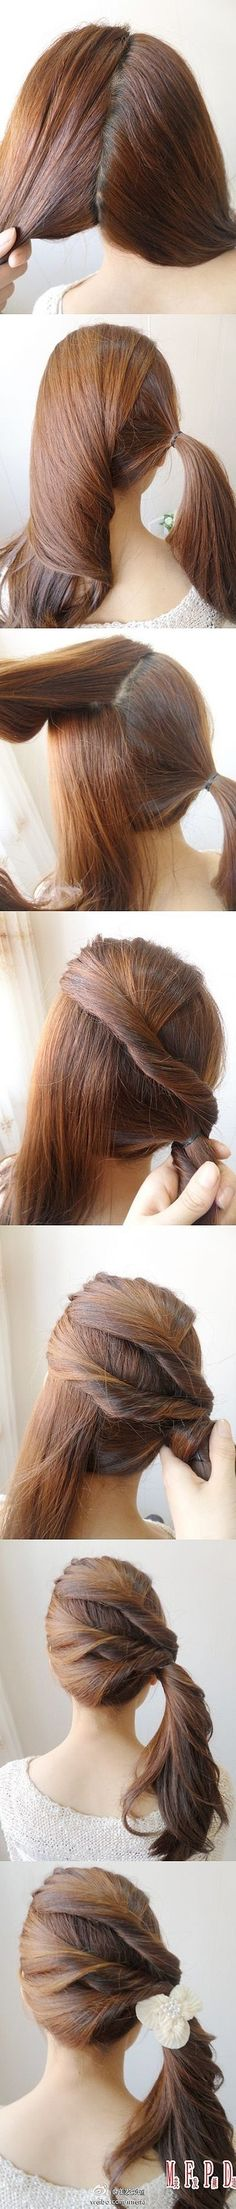 Simple Way to look cute and wear your hair still in a ponytail .